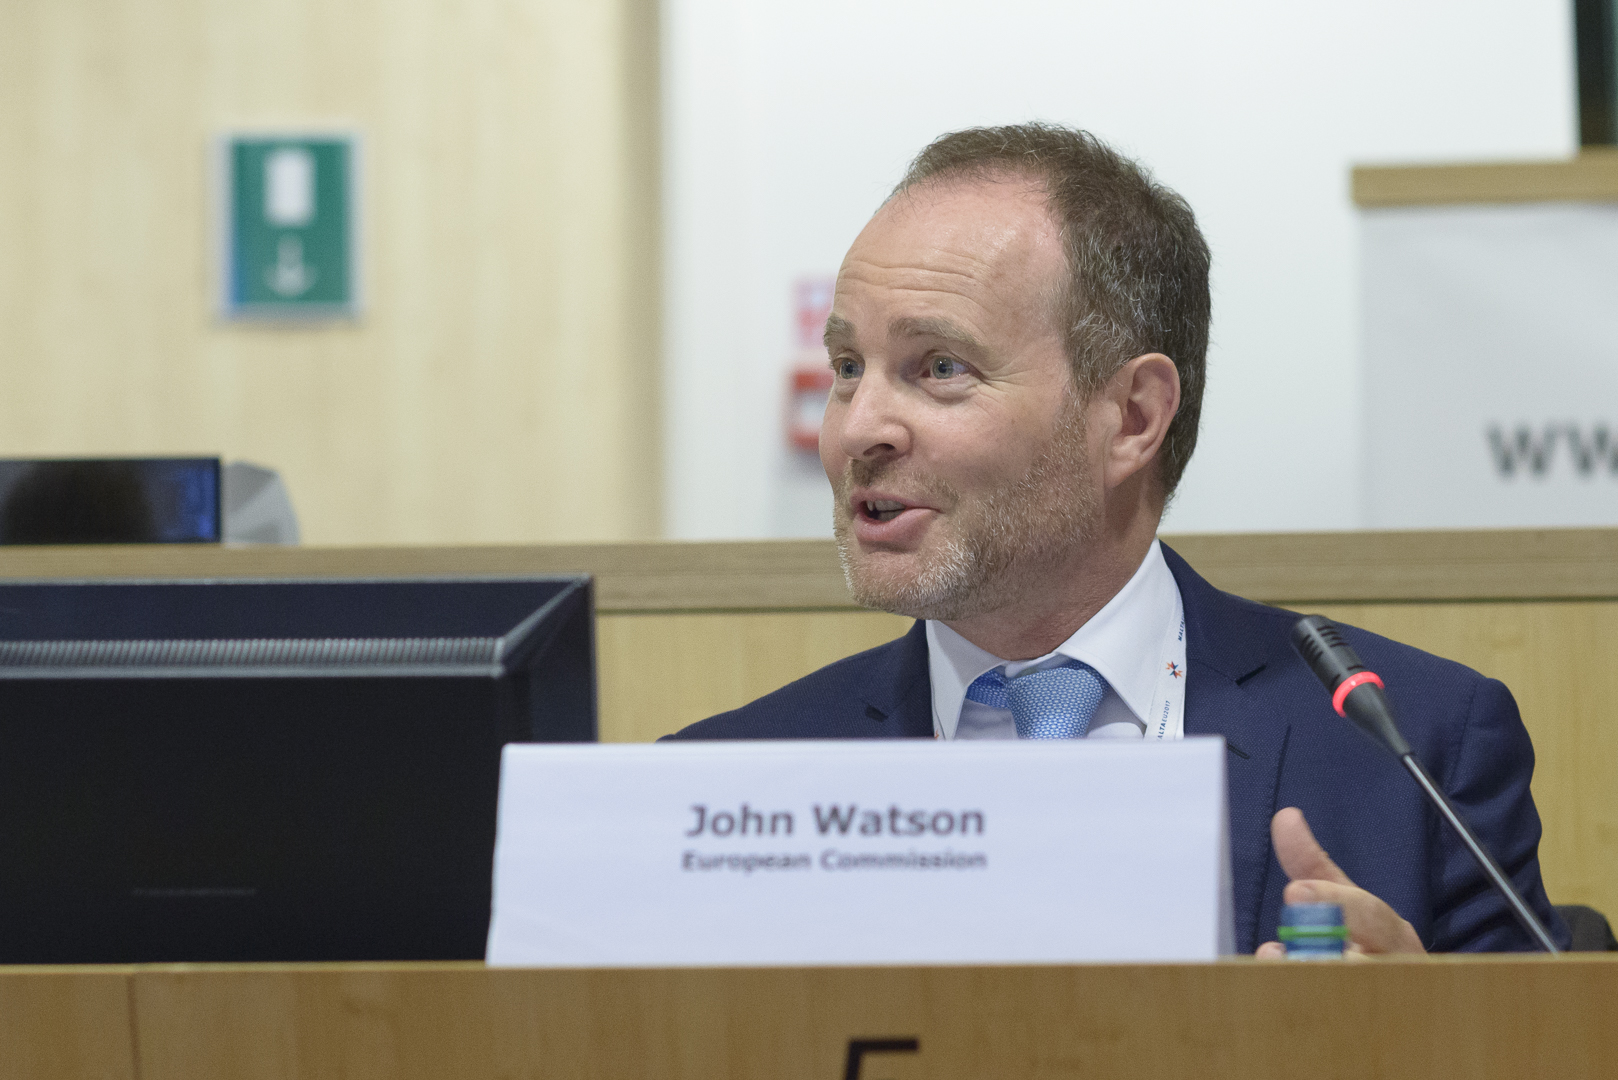 PUTTING EU LAW INTO PRACTICE CONFERENCE - John Watson, Director, Better Regulation and Work Programme, European Commission